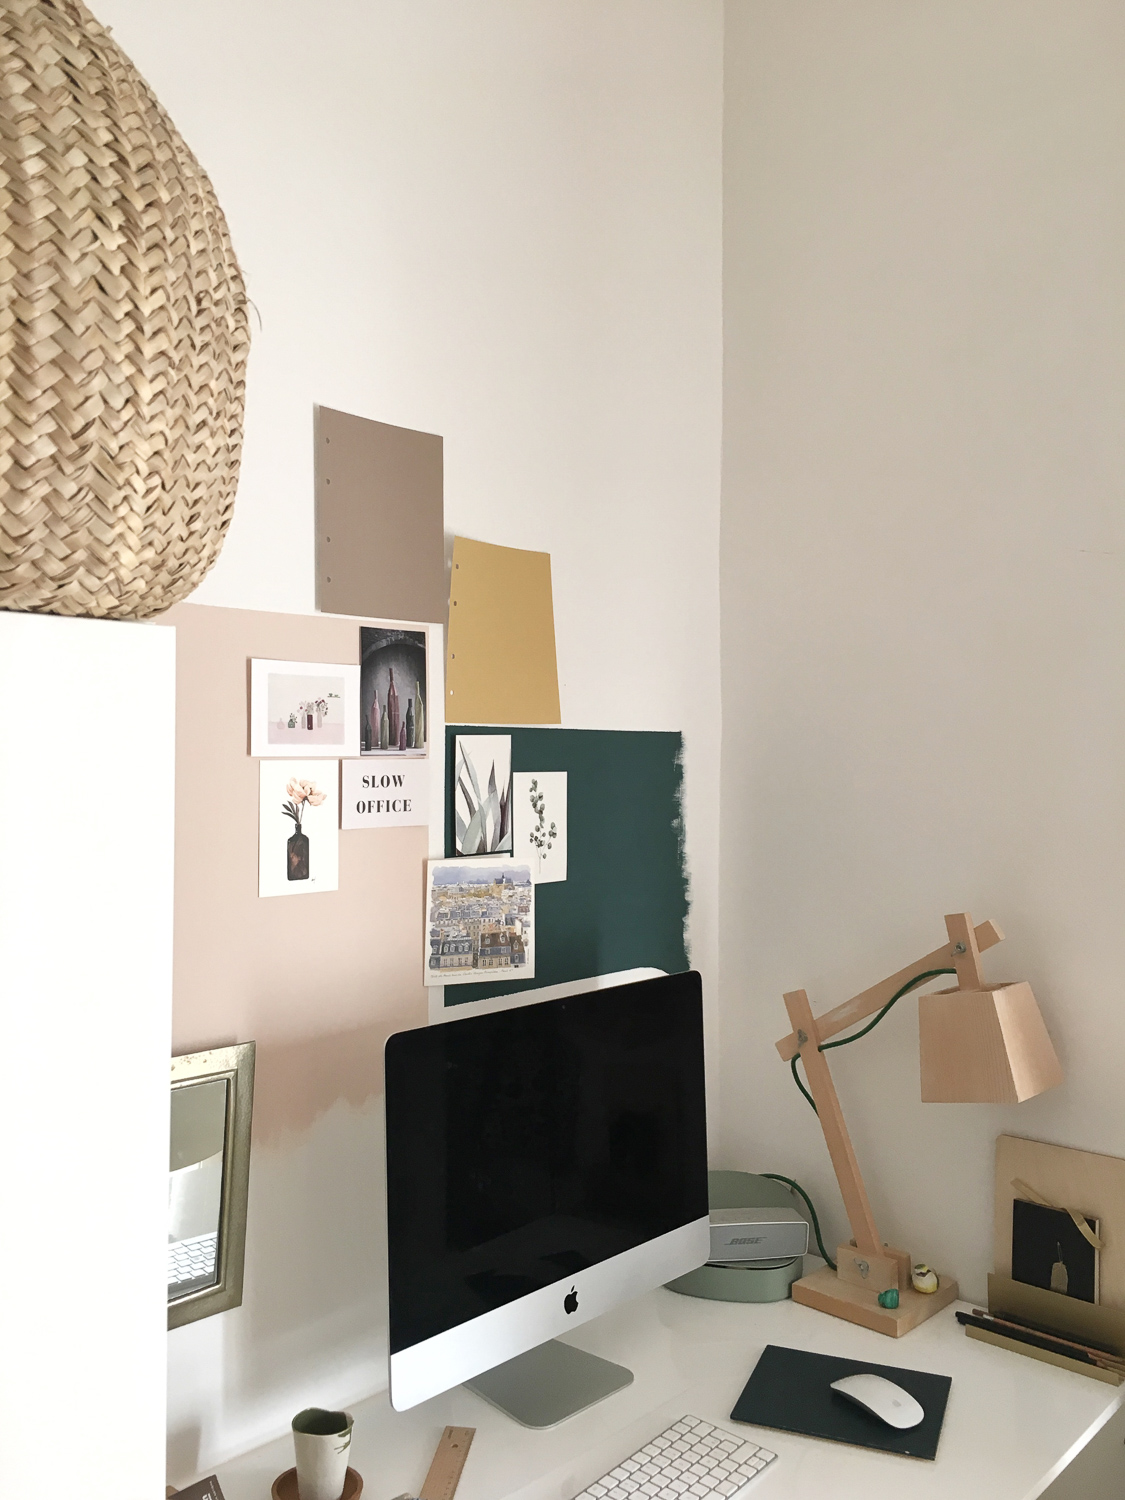 ilaria fatone - my workspace at home - makeover - before